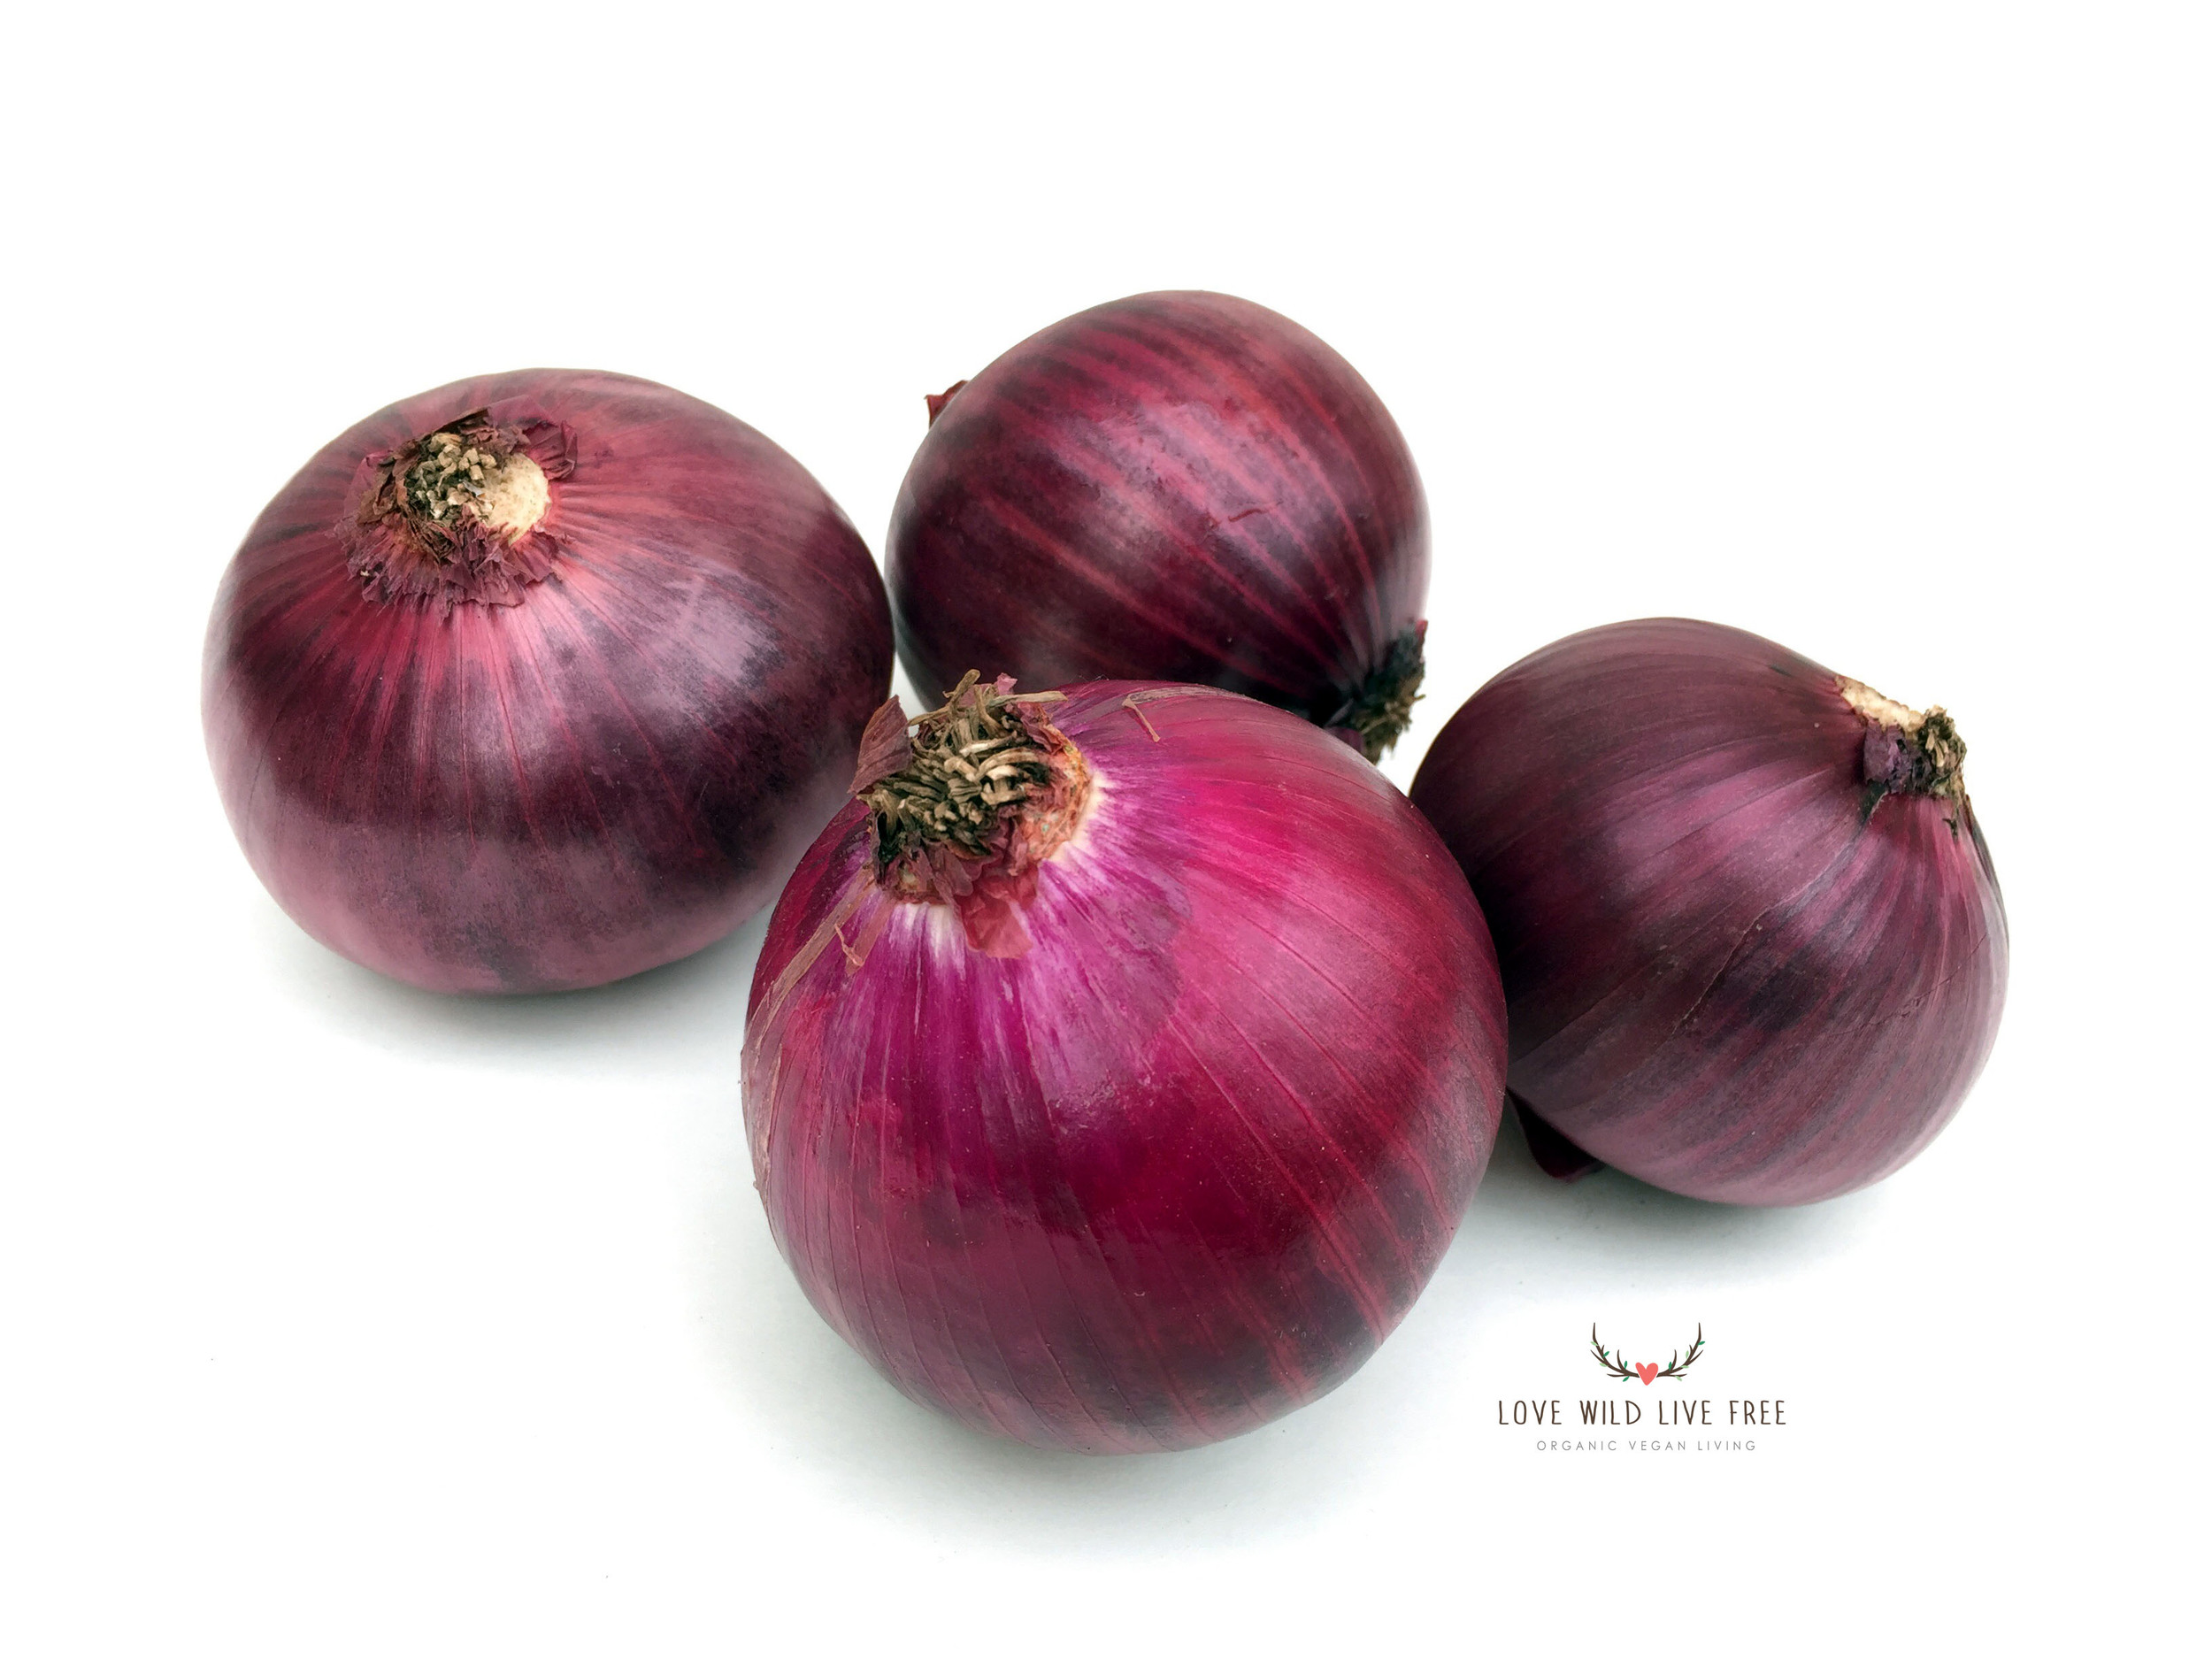 Red onions from Haystrom Farm at the Evergreen Brick Works Farmers' Market.